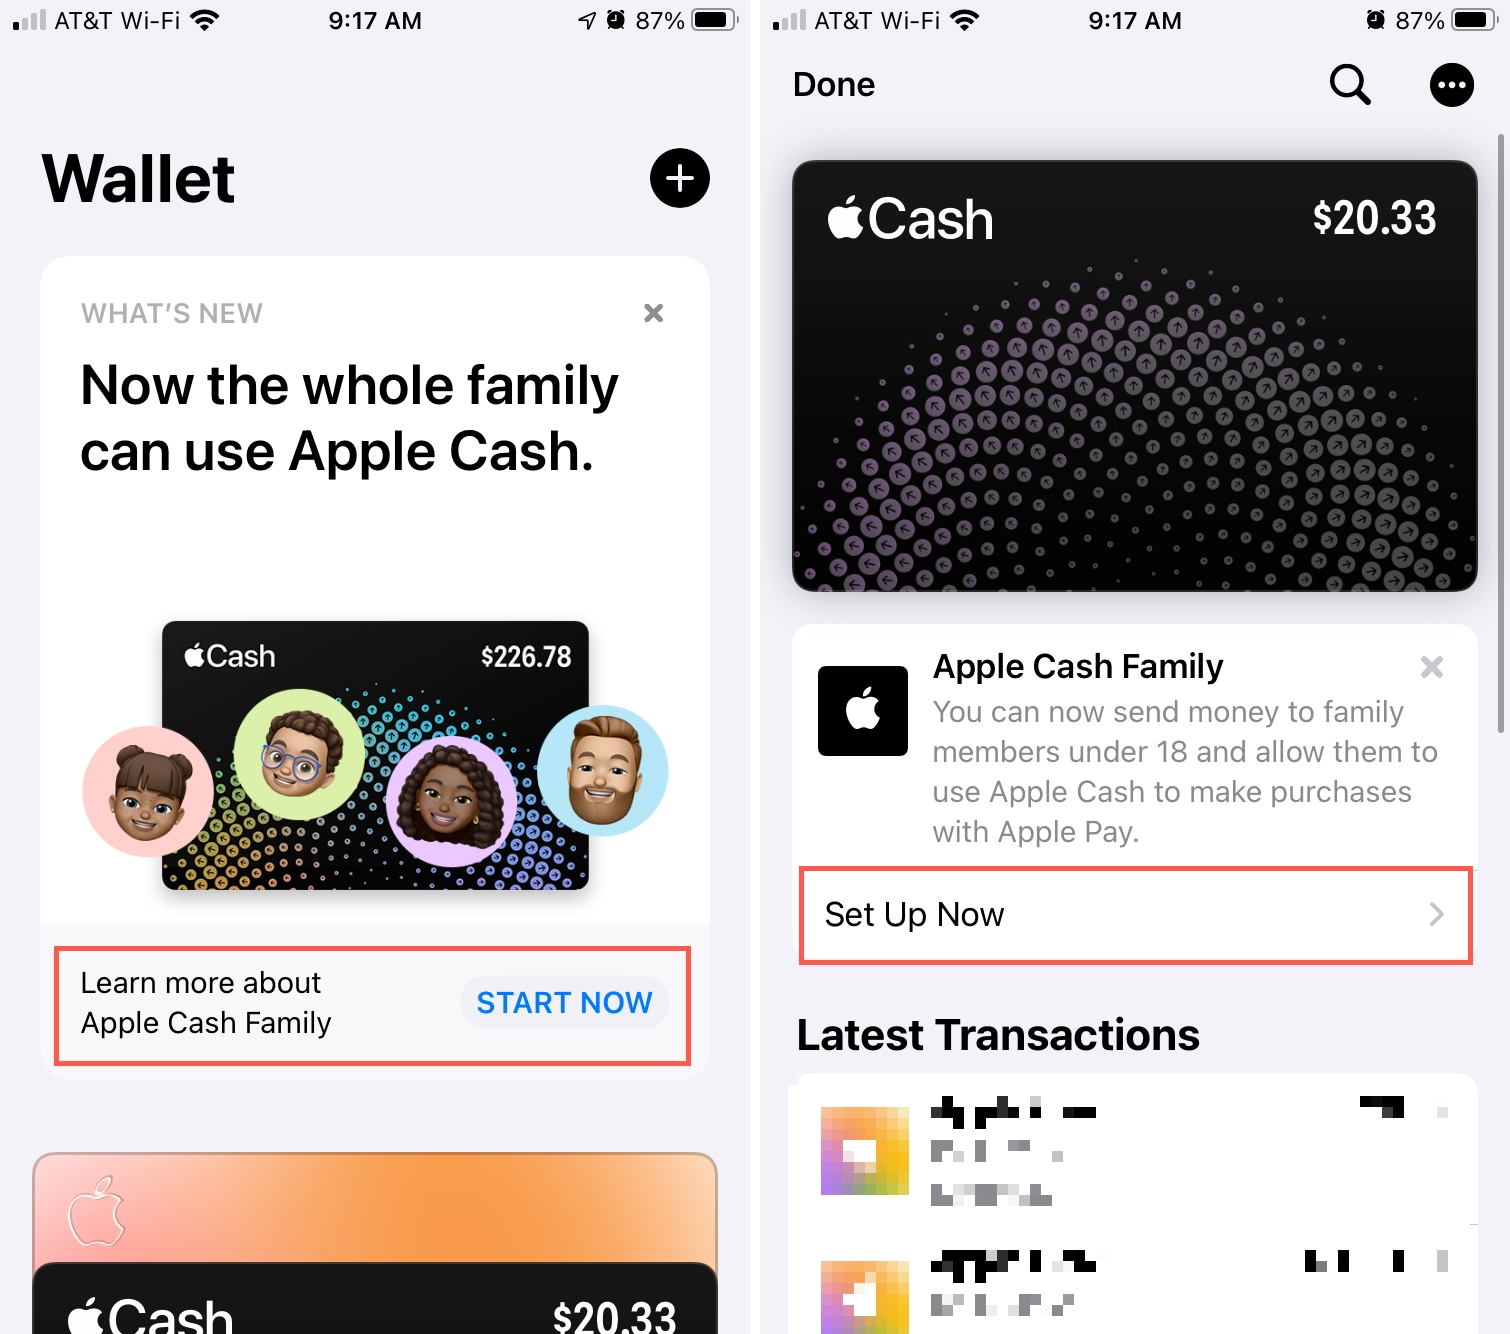 Set Up Apple Cash Family from Wallet